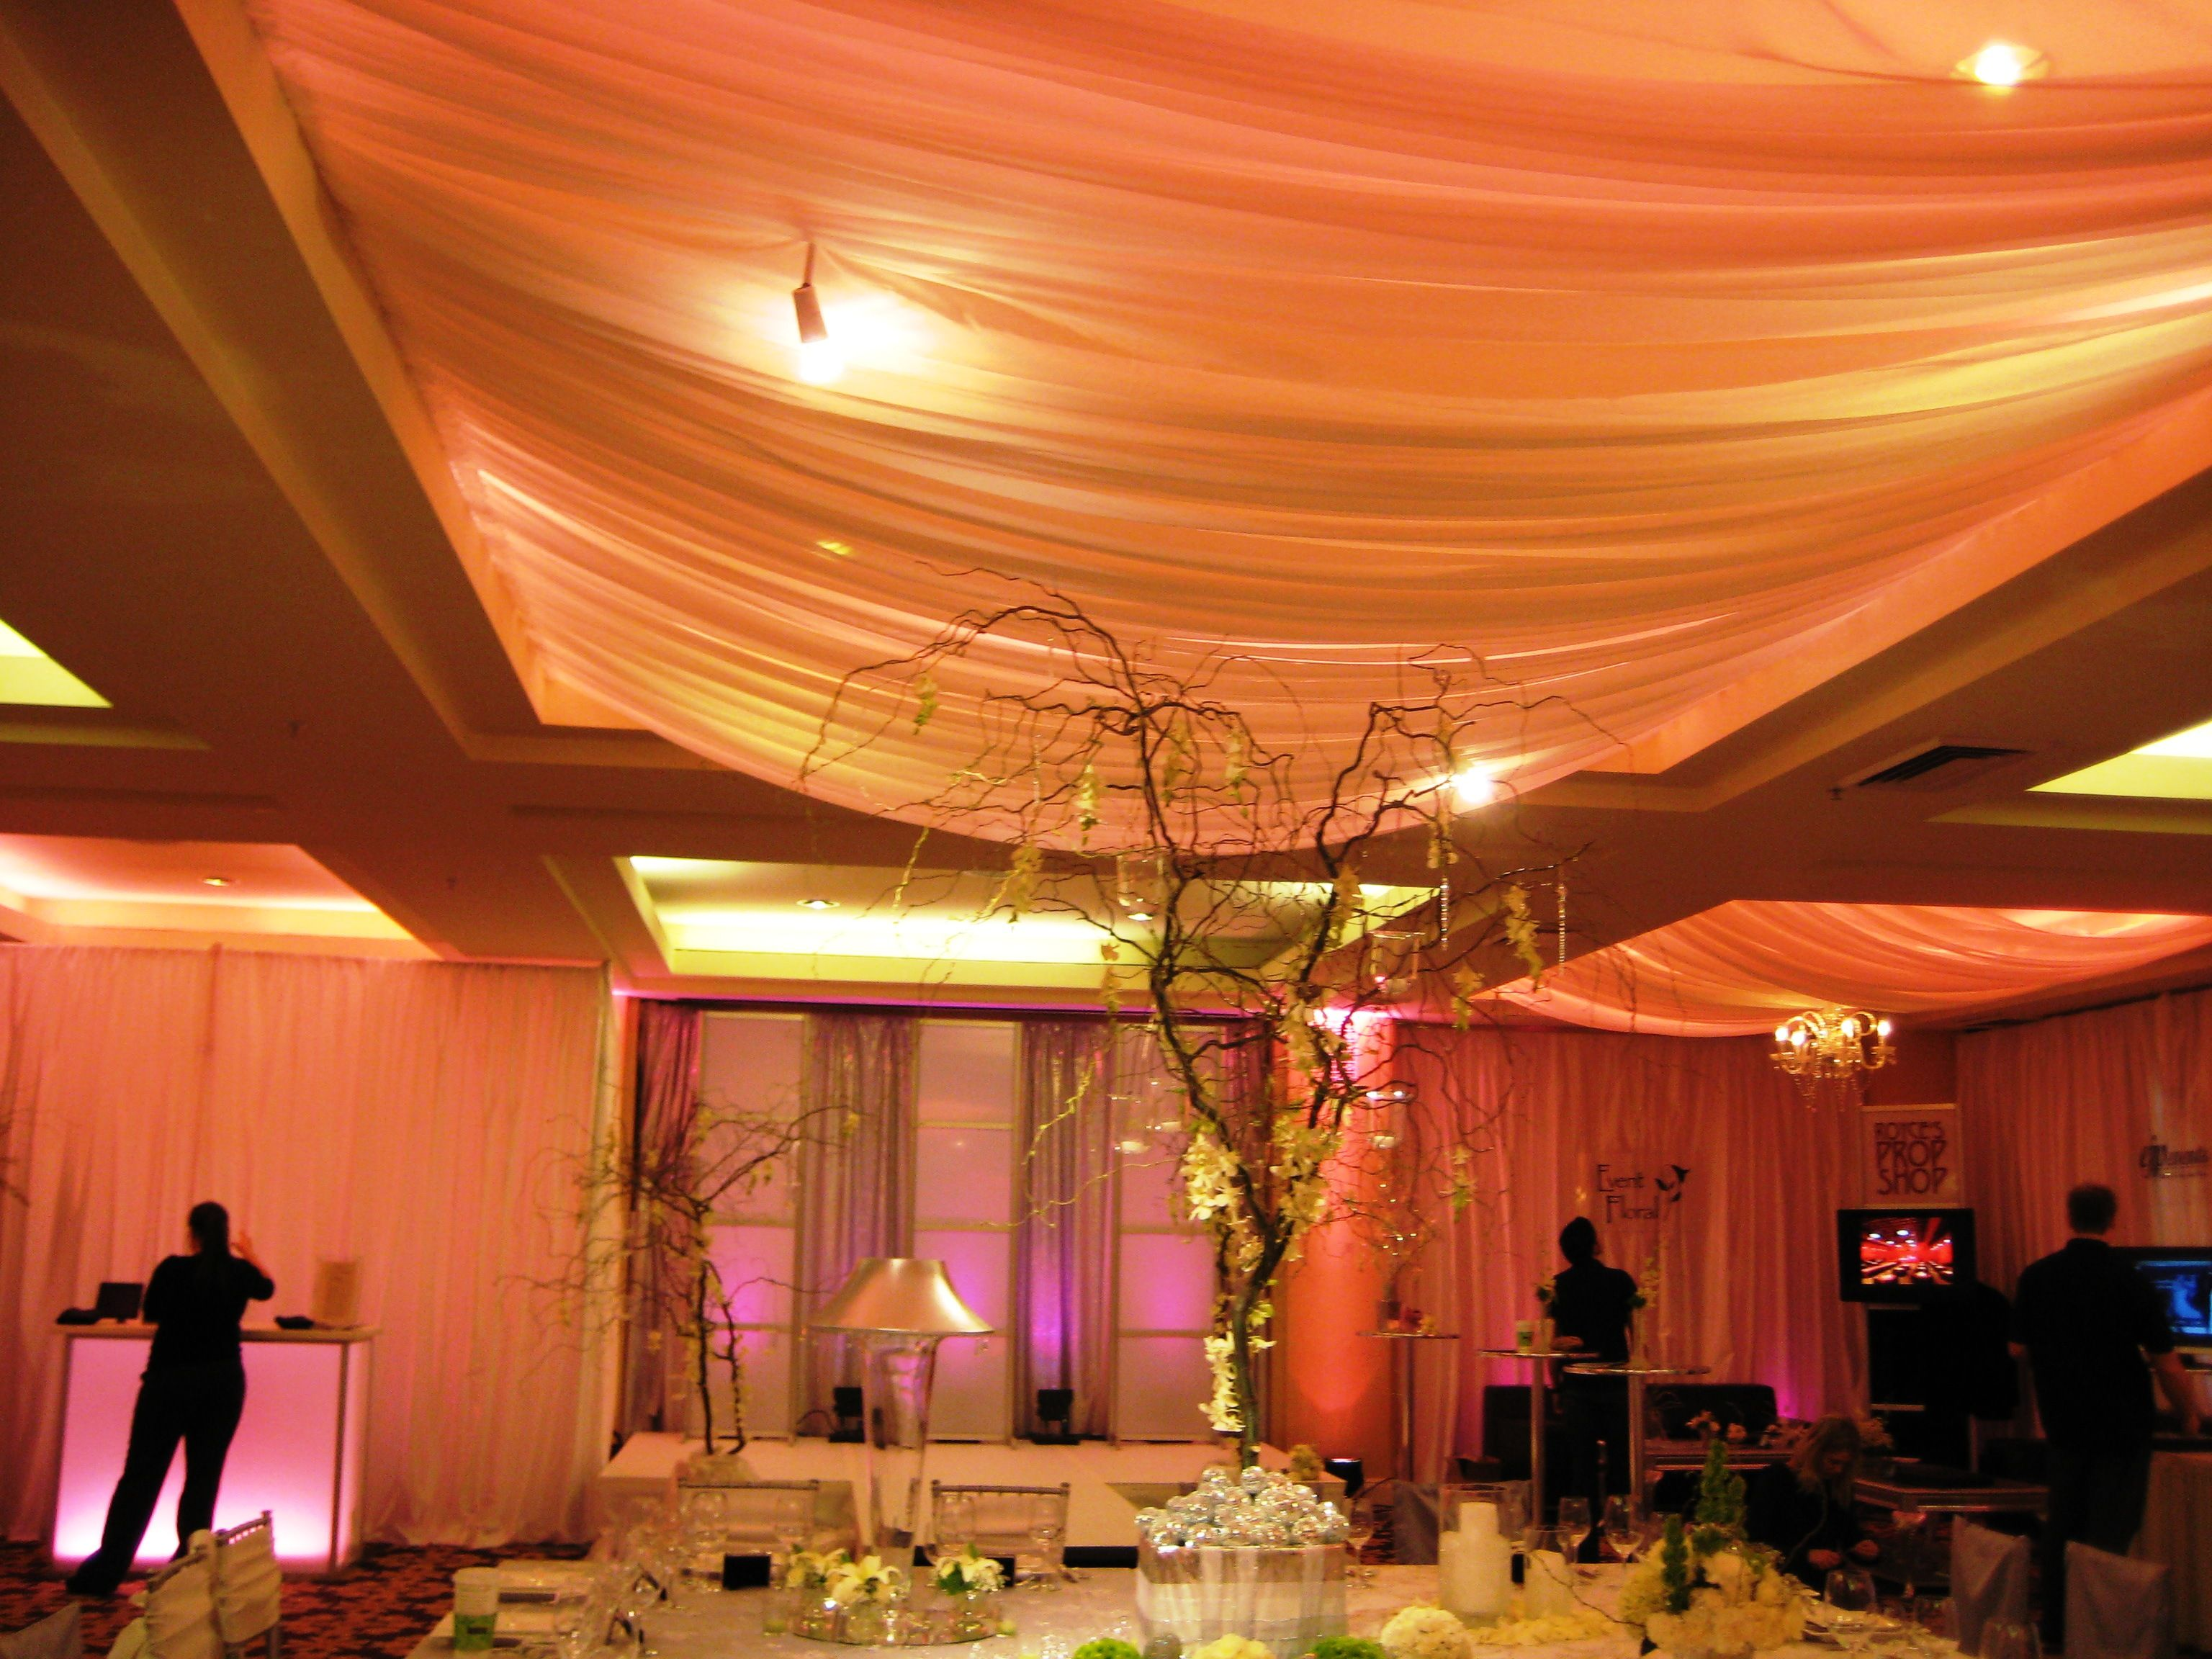 Wedding hall everything wedding pinterest for Ceiling mural ideas